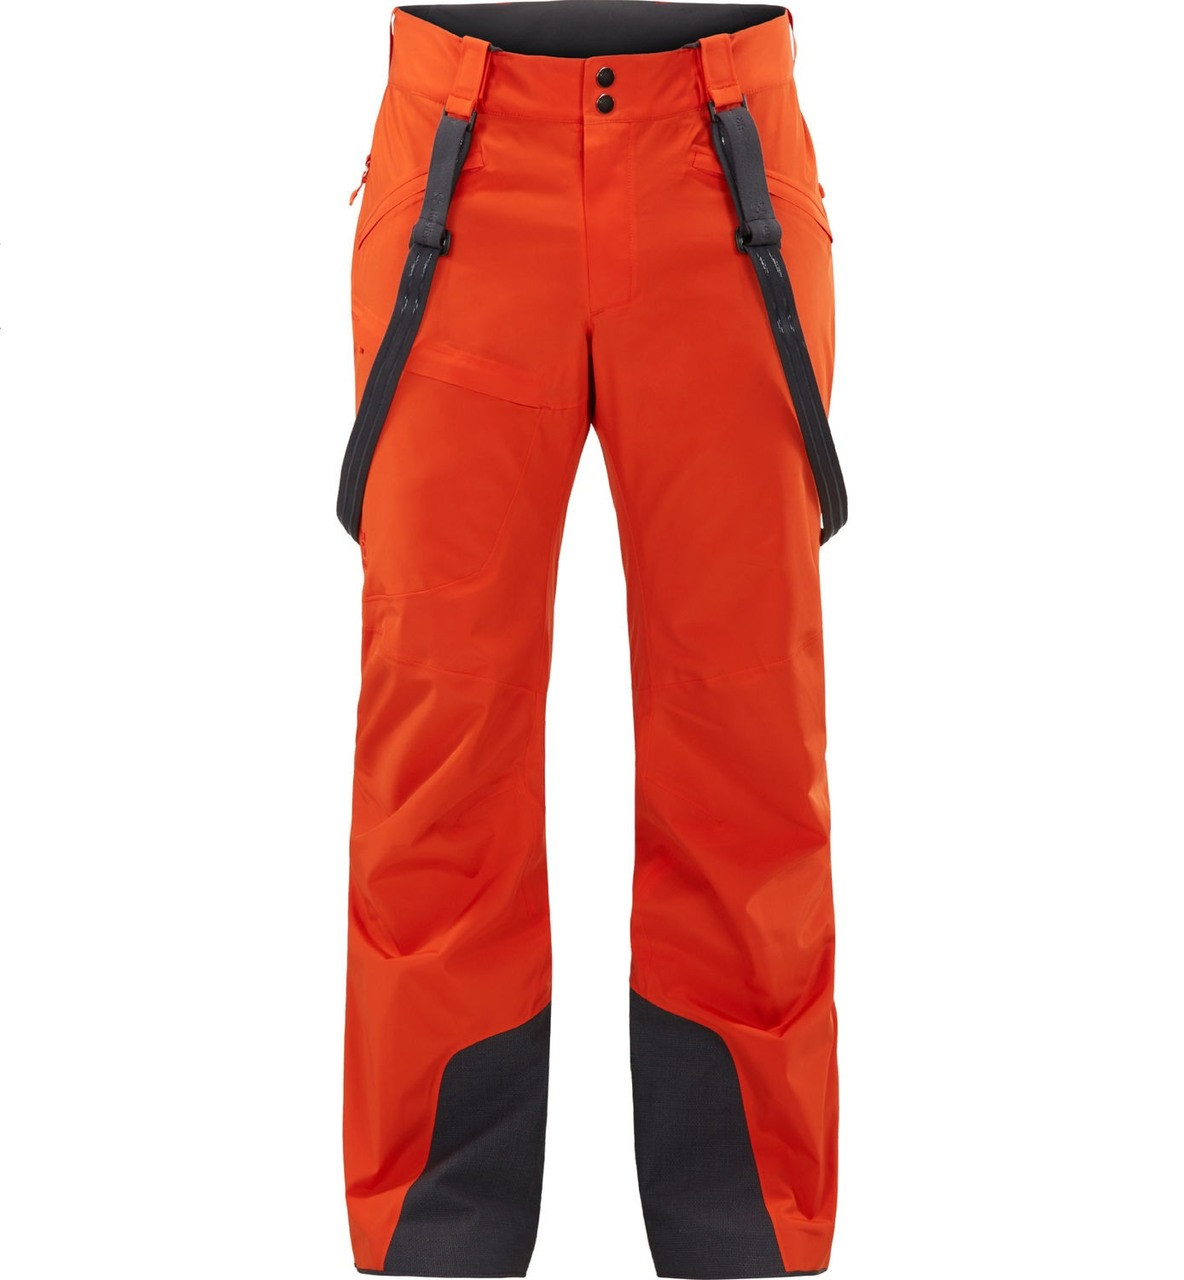 haglofs niva pant men, ski pants